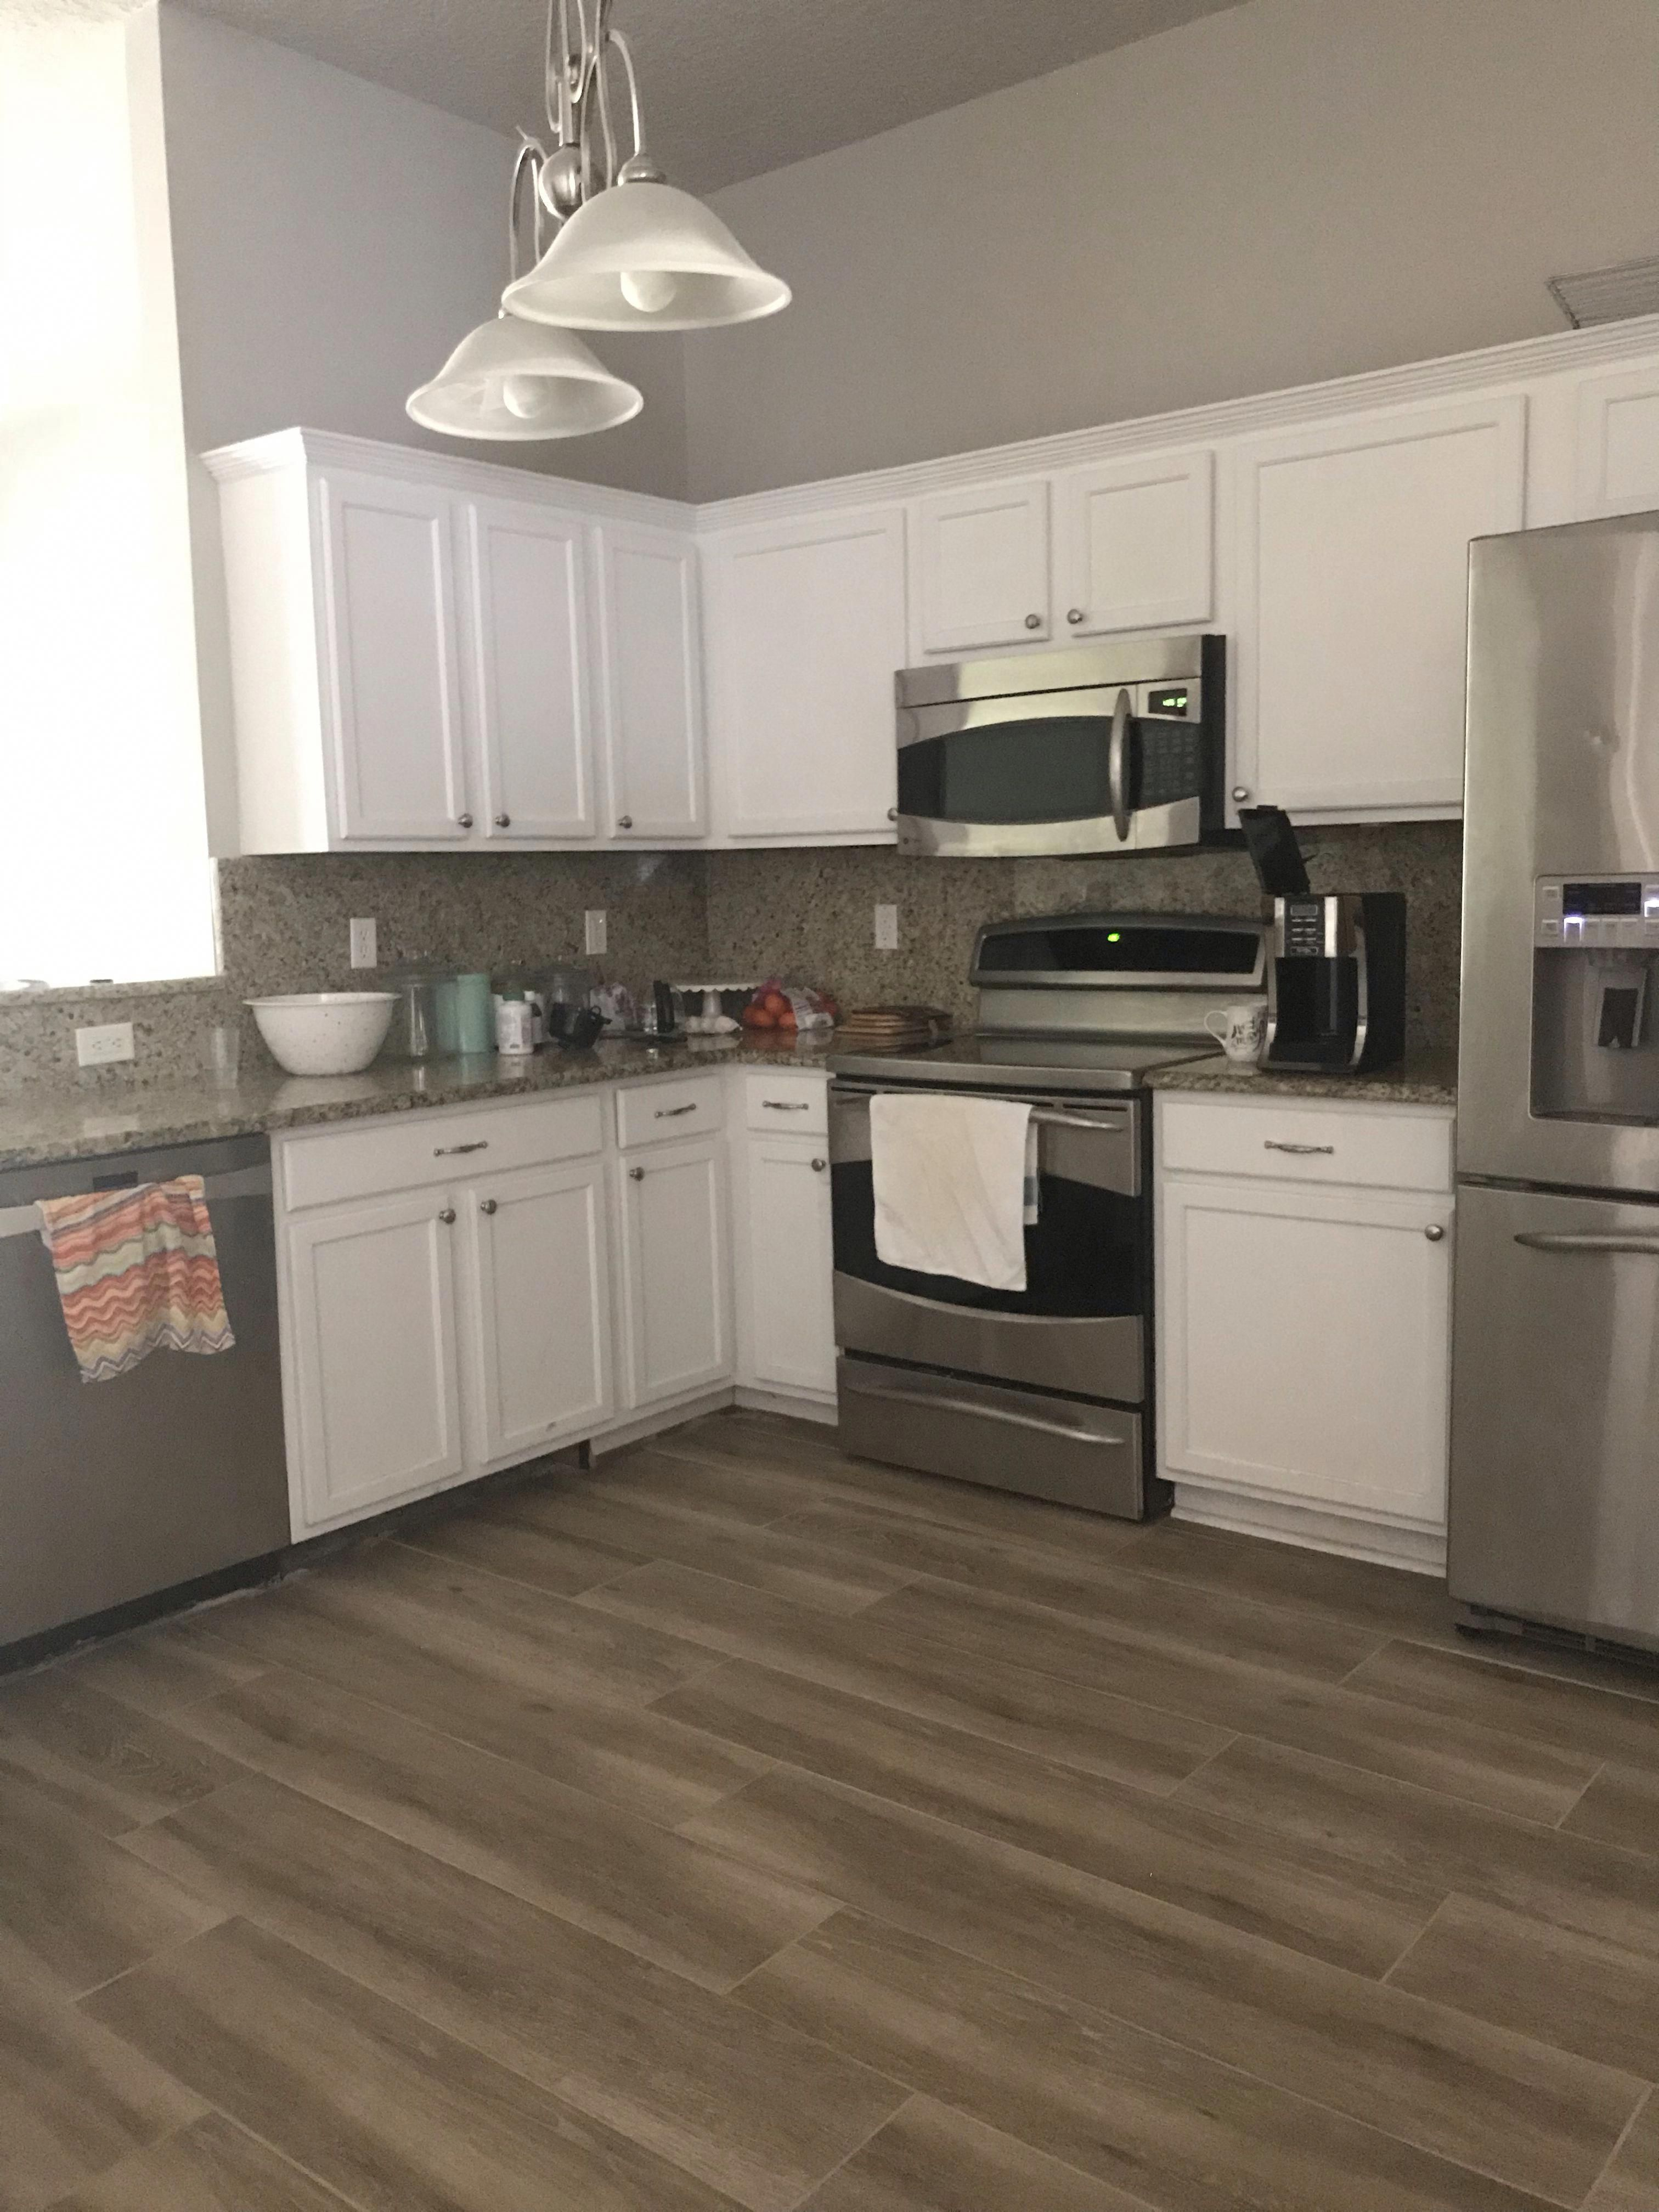 Browse to this site kitchen renovation ideas in 2020